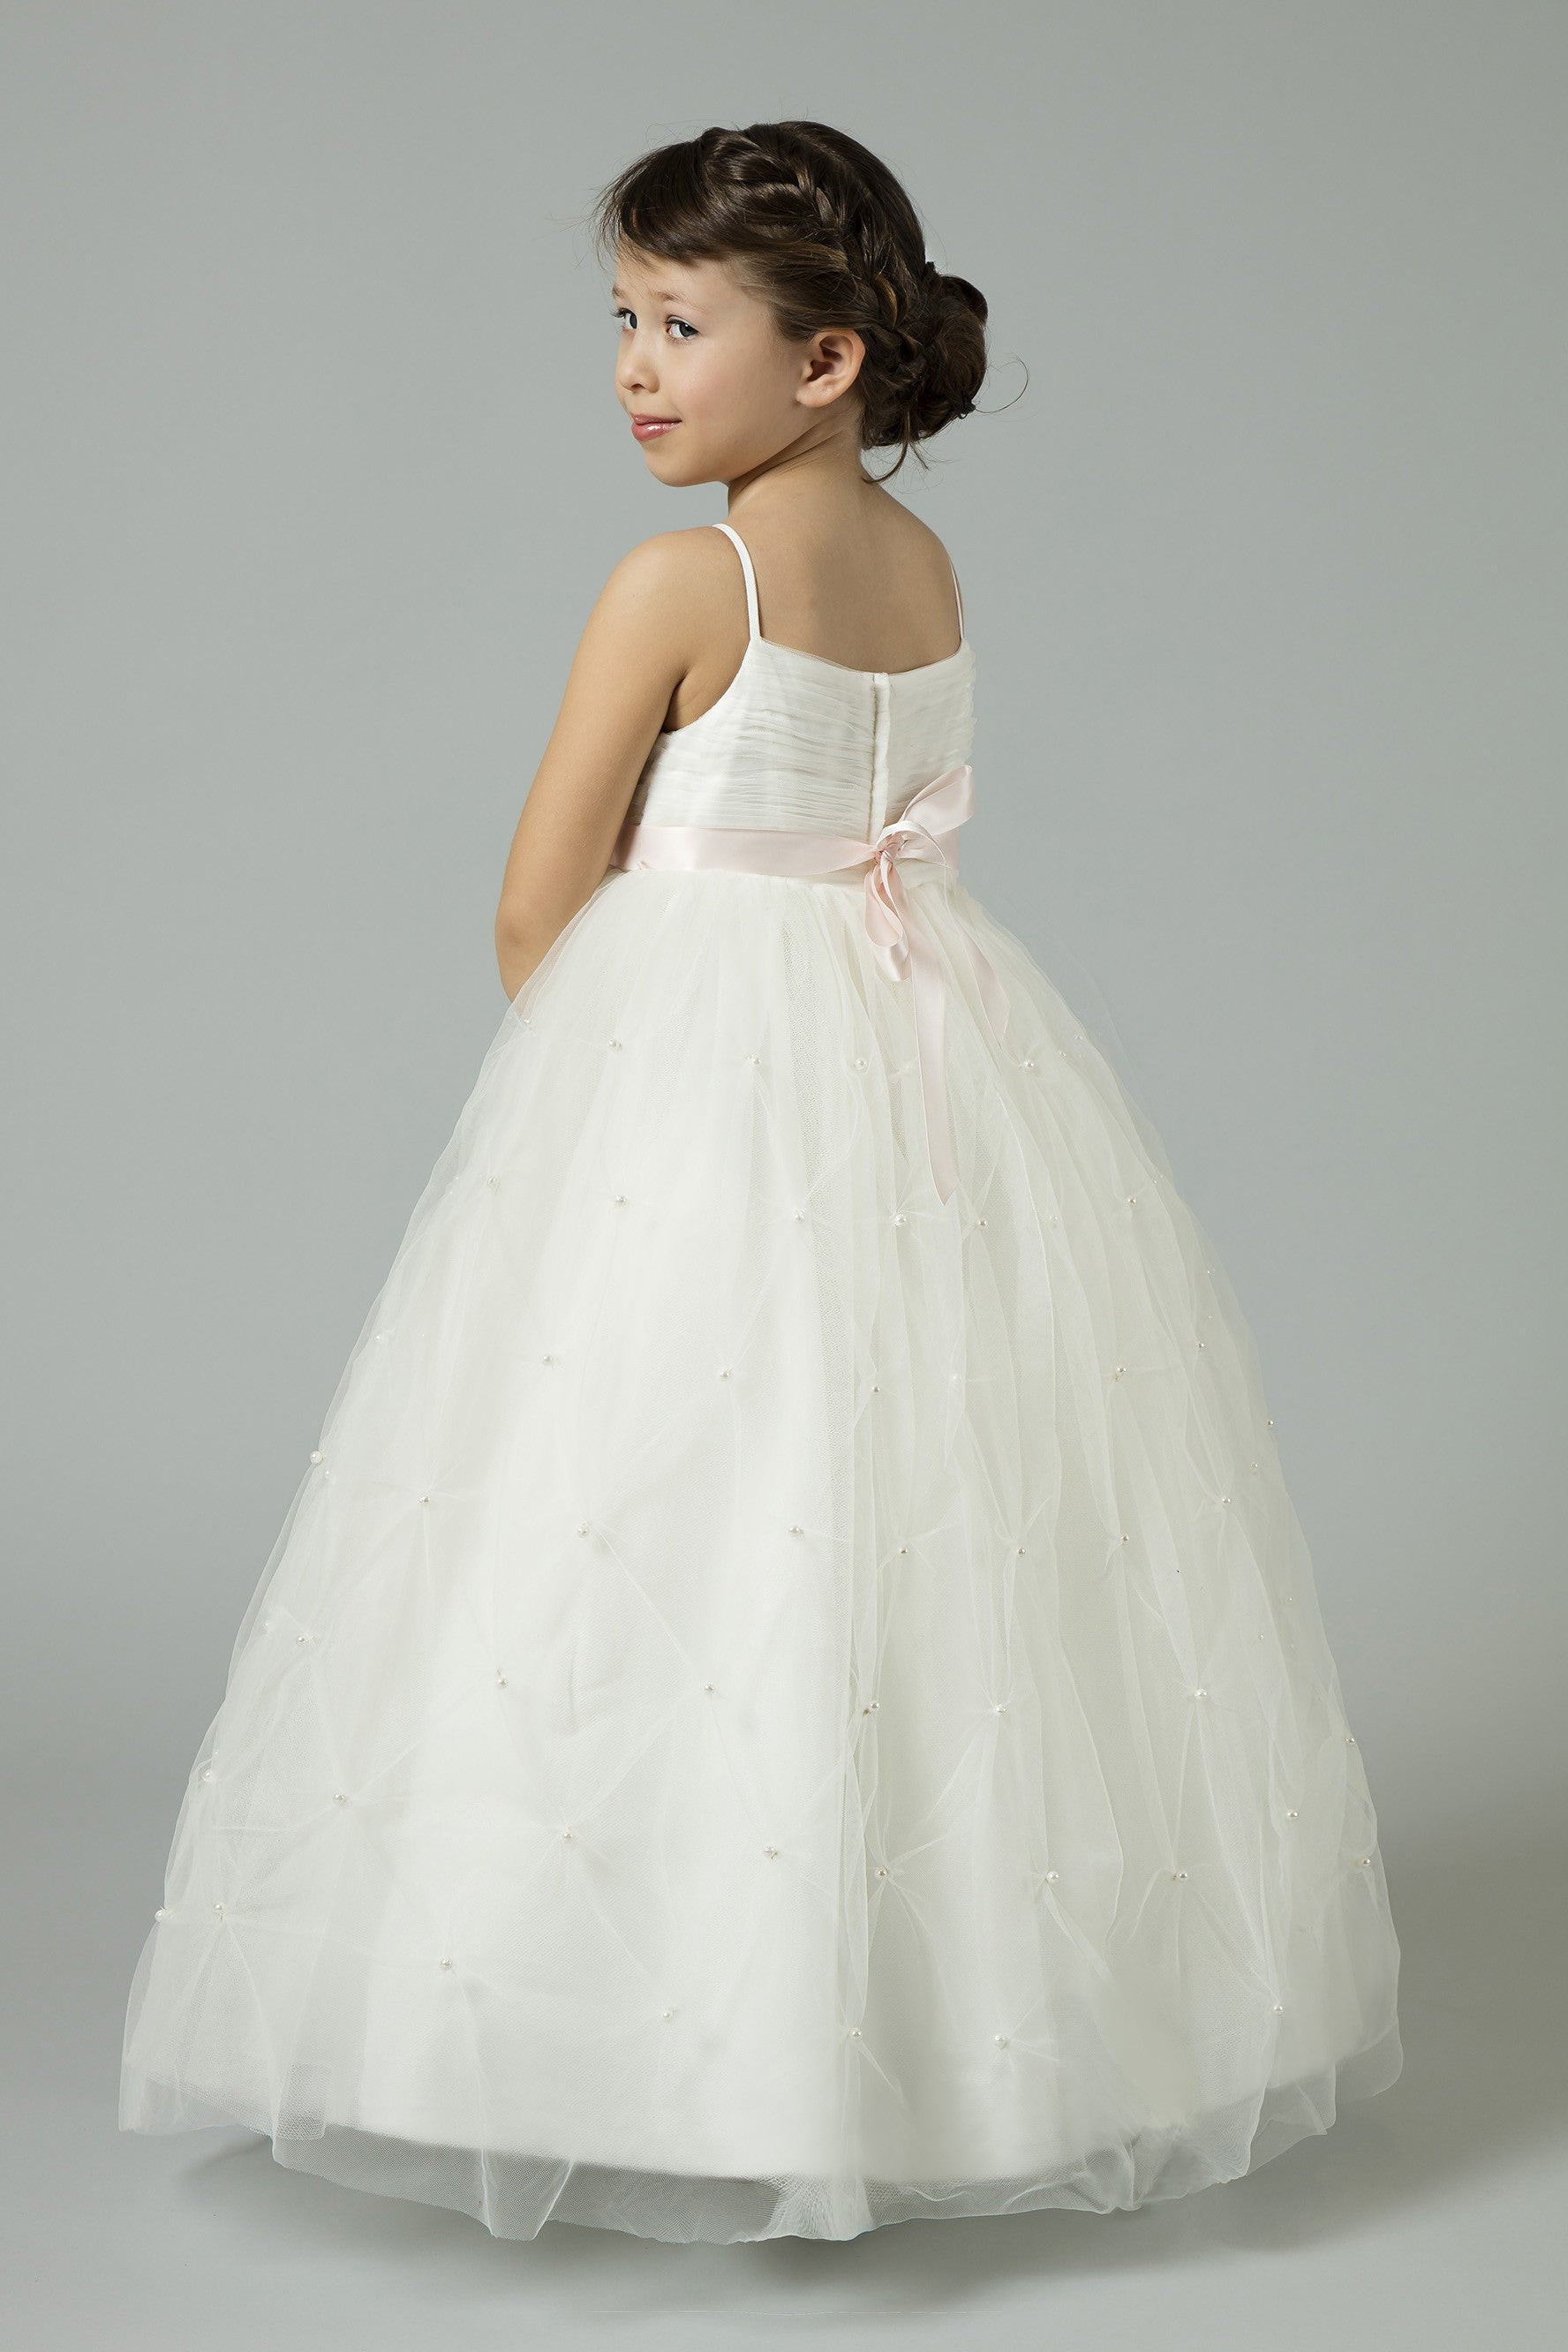 Tulle Flower Girl Dress with Pearl Pick Ups WG1369